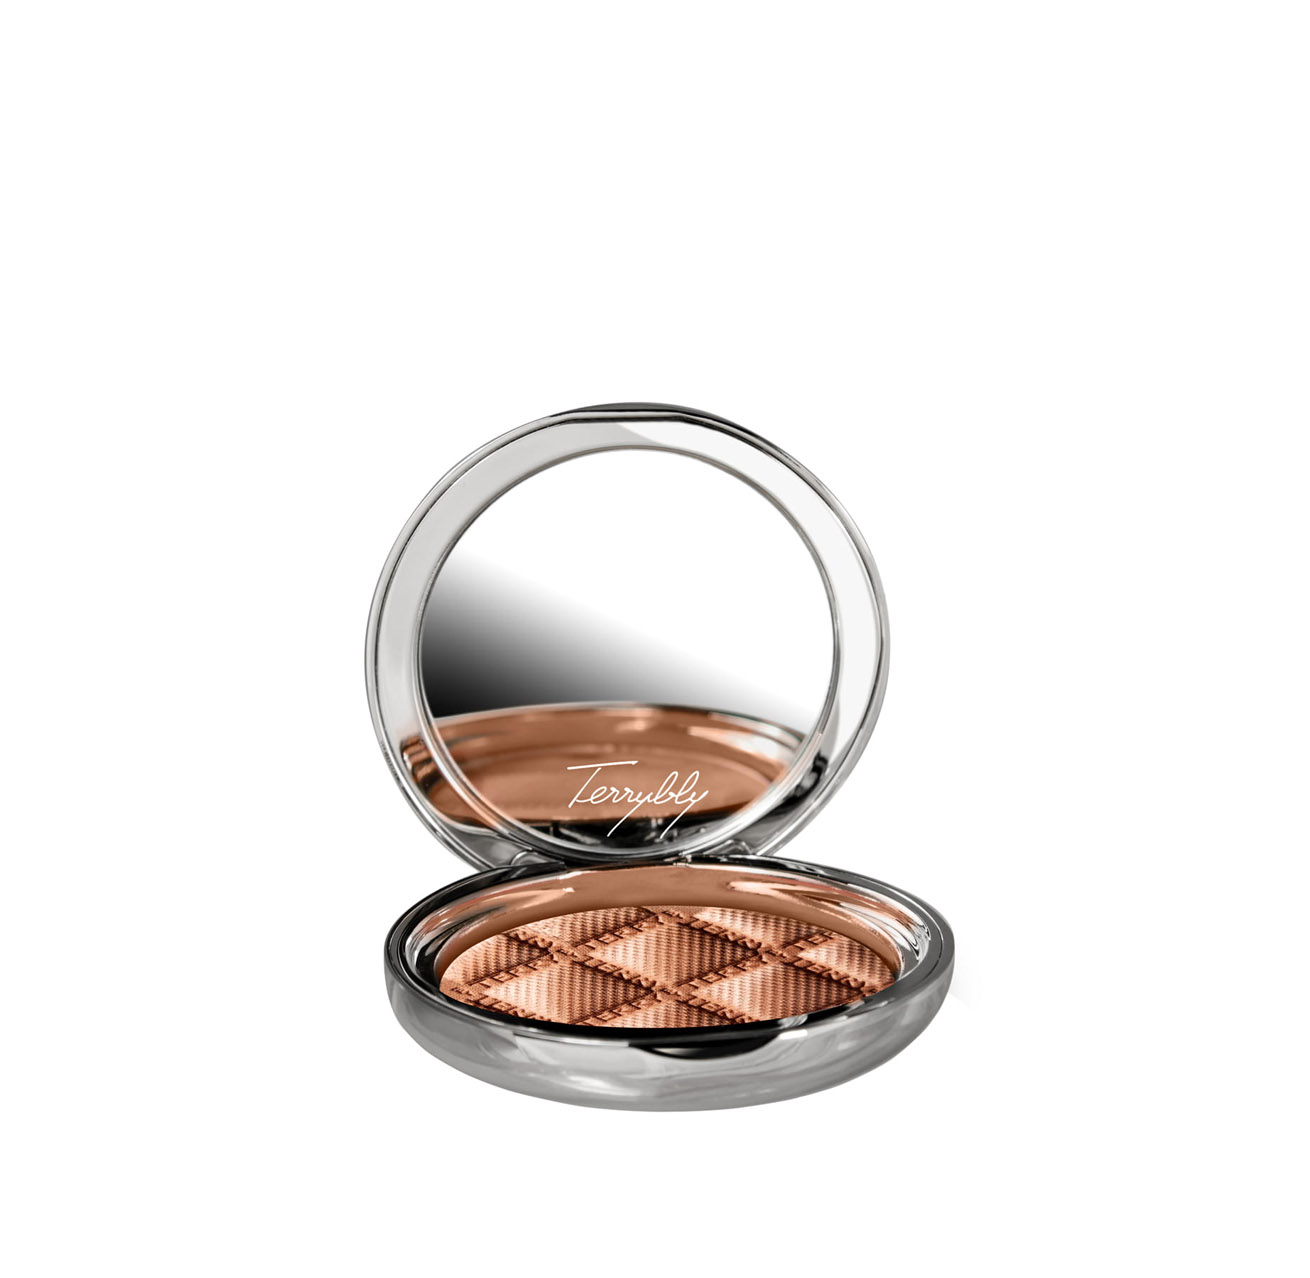 1-Terrybly-Densiliss-Compact-cipria-compatta-Linea-makeup-di-lusso-By-Terry-Dispar-SpA.jpg